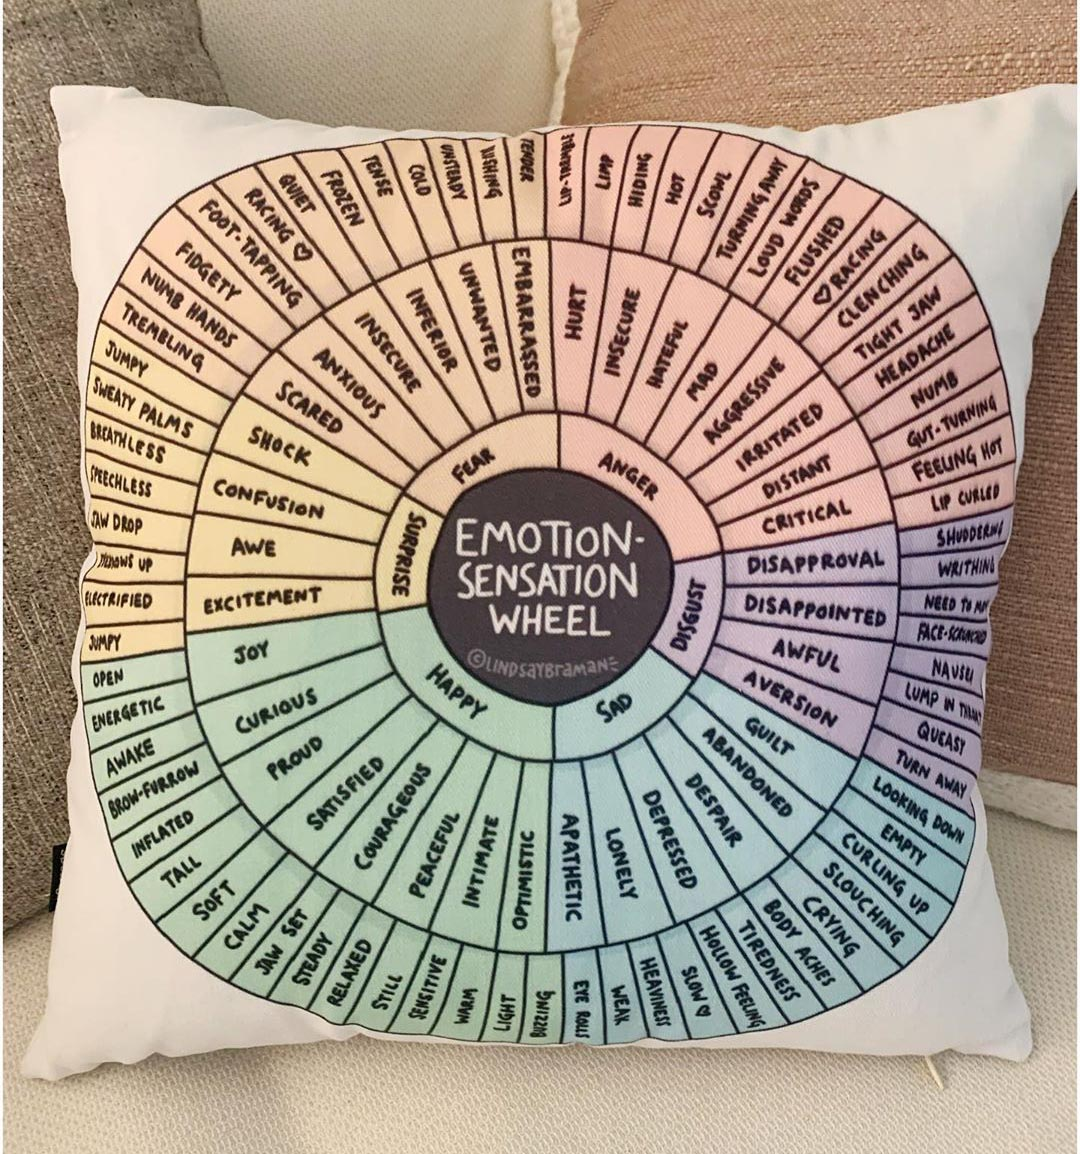 Up close picture of the emotion-sensation feeling wheel pillow.